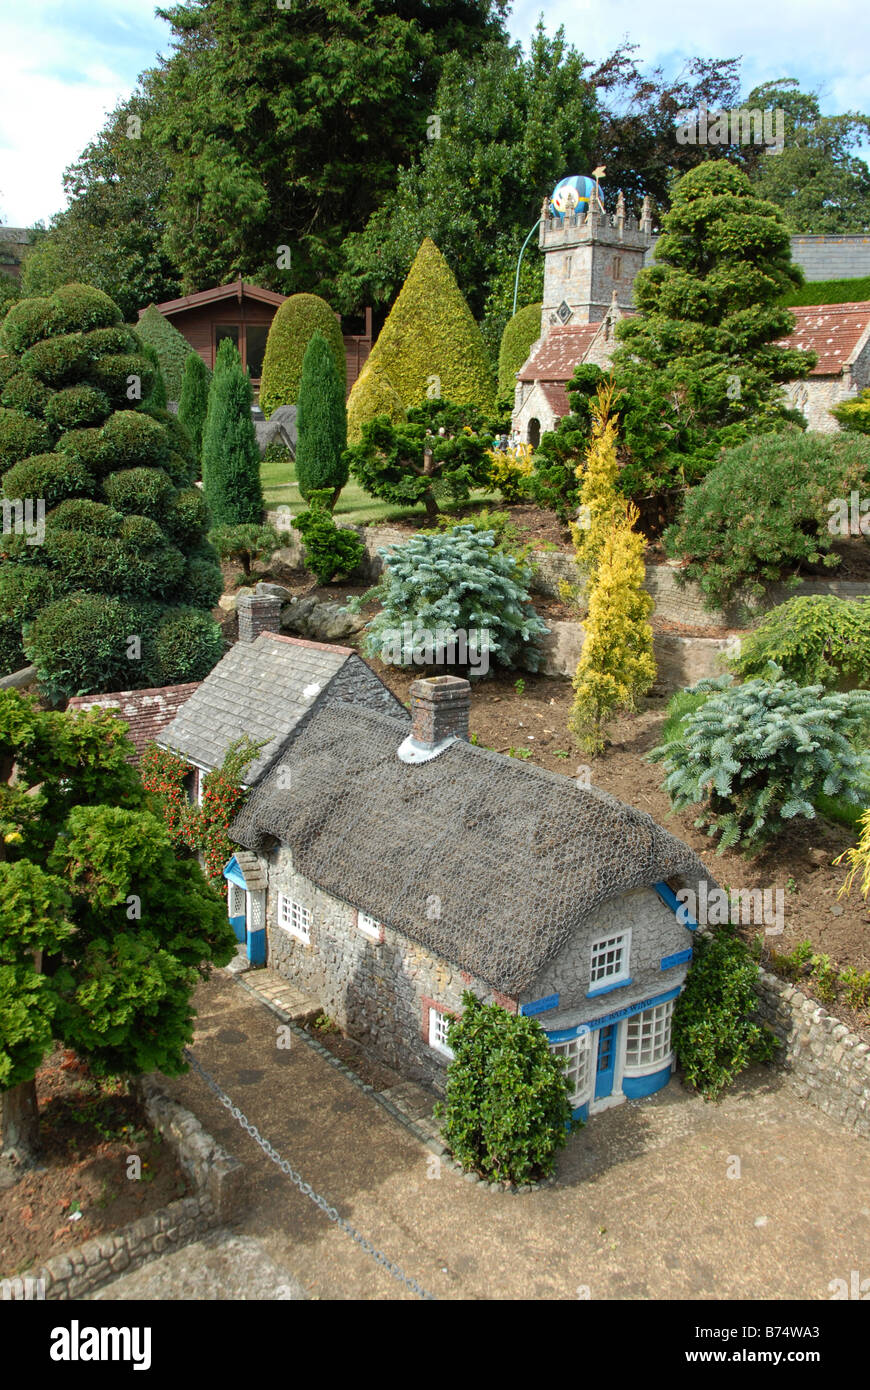 A model village of Godshill in Godshill, on the Isle of Wright,Britian - Stock Image